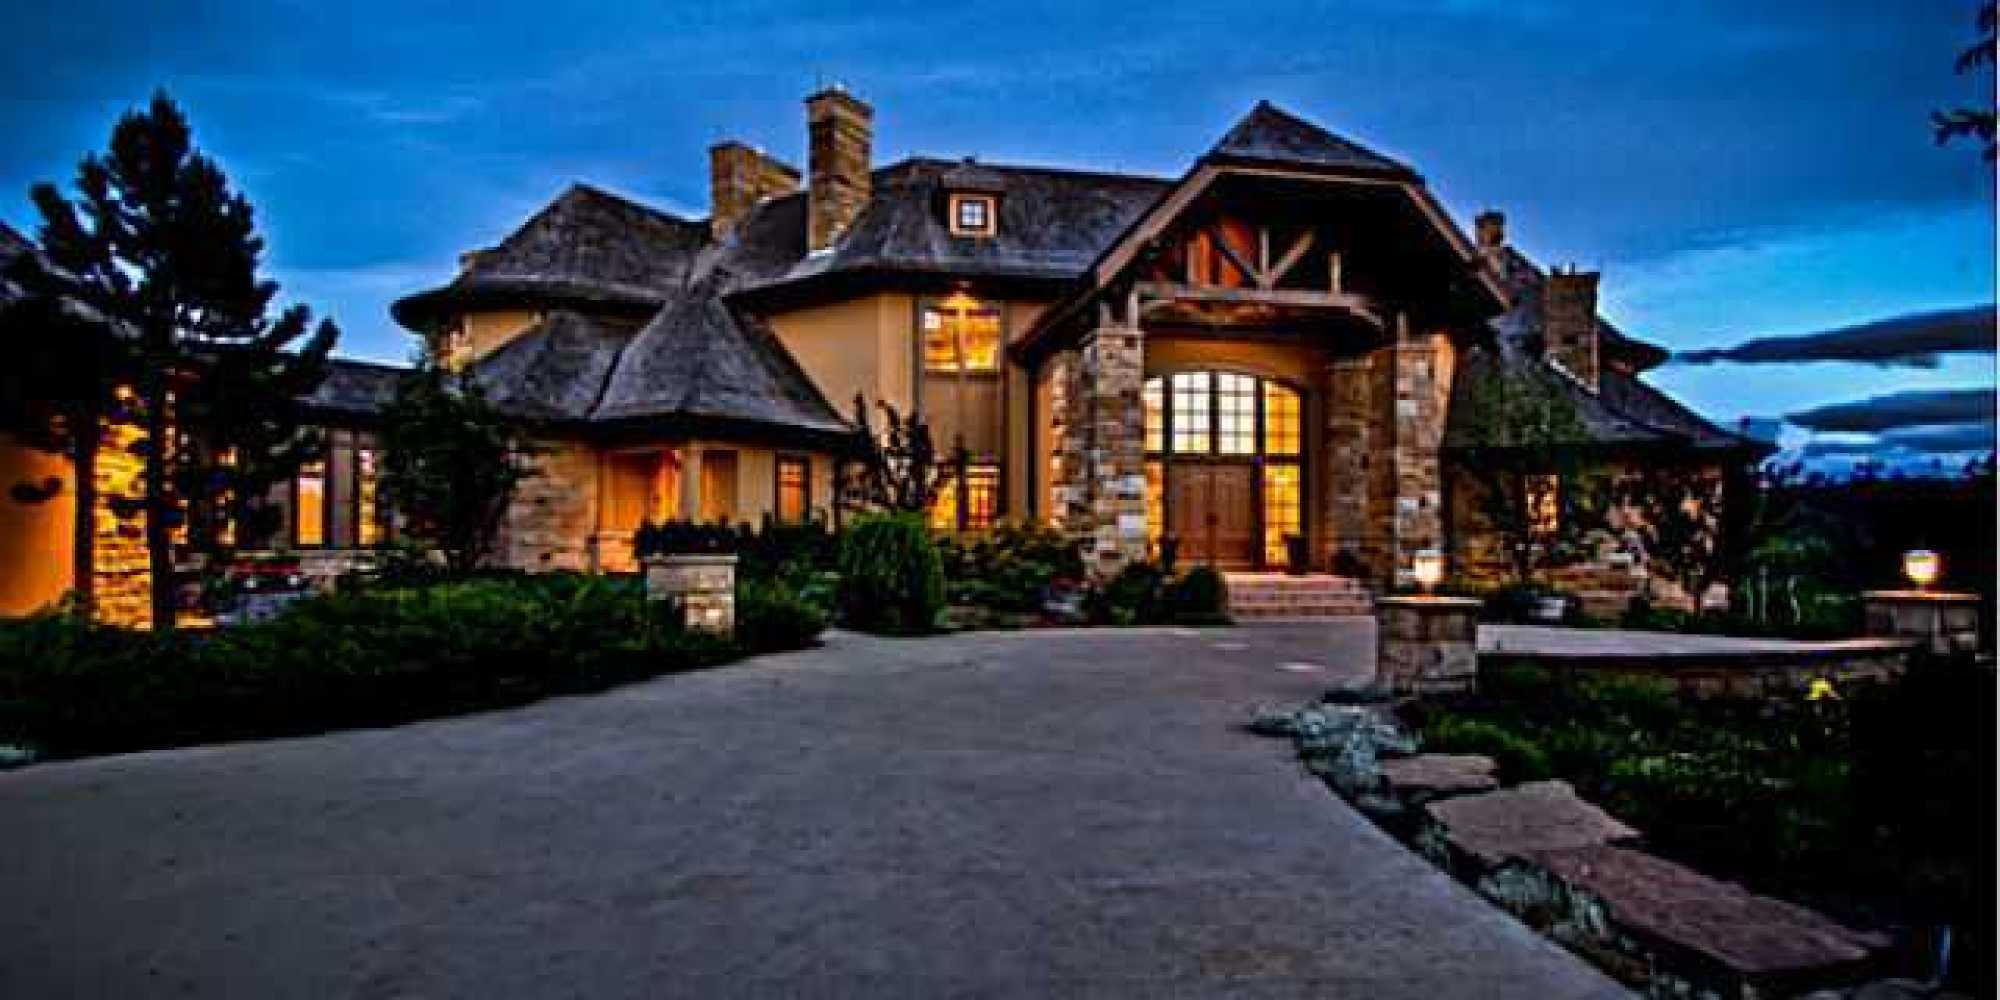 Alberta 39 S Most Expensive Homes For Sale The Top 3 PHOTOS